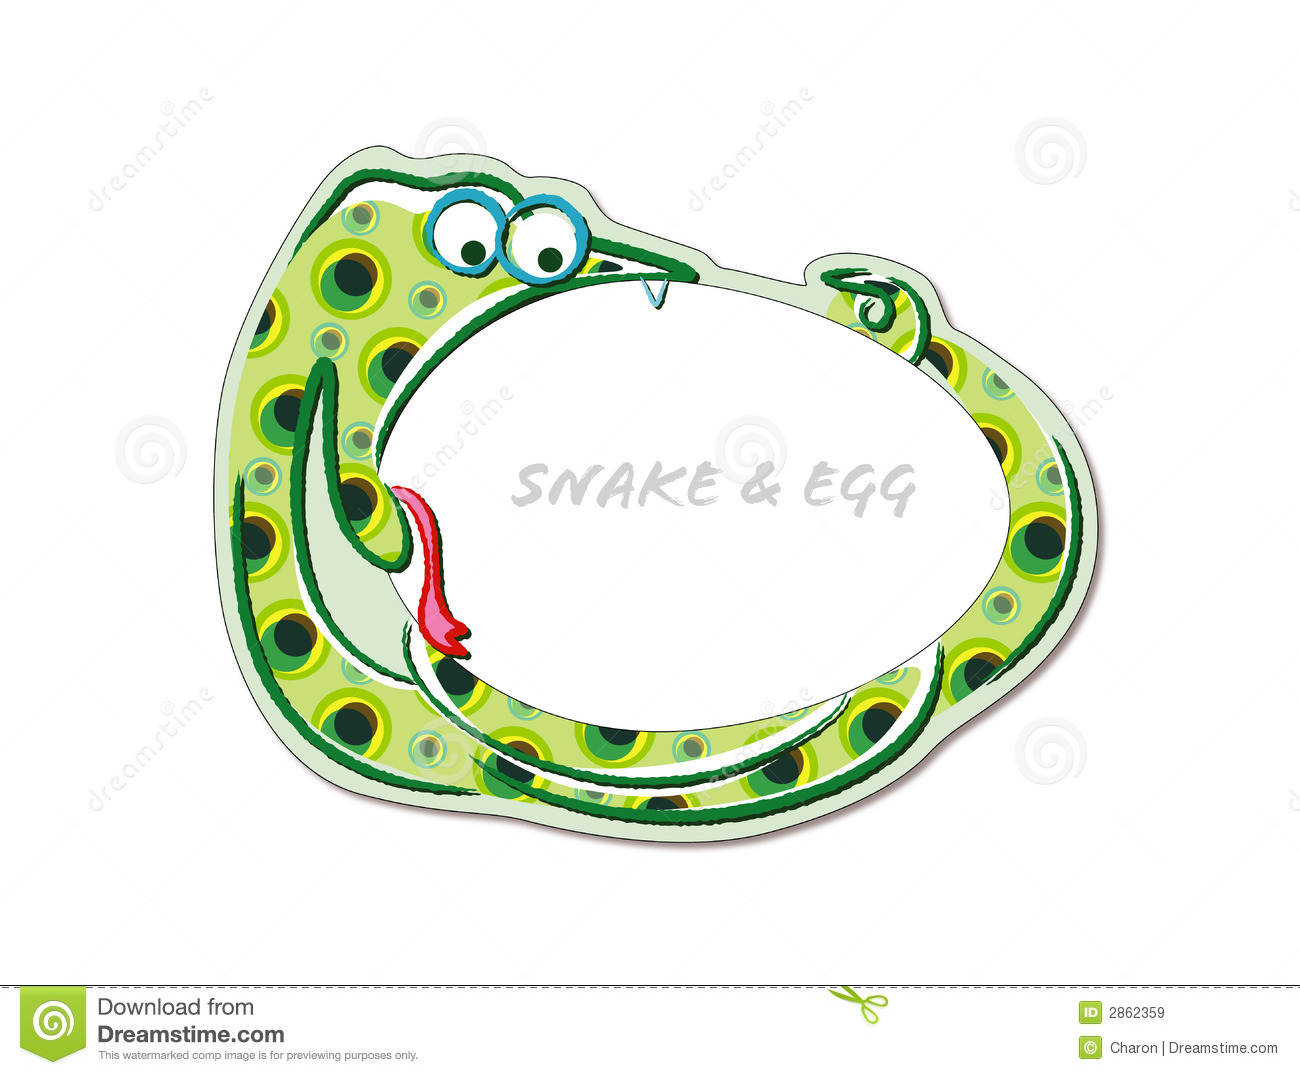 Snake Biting An Egg Cute Cartoon Royalty Free Stock Images   Image